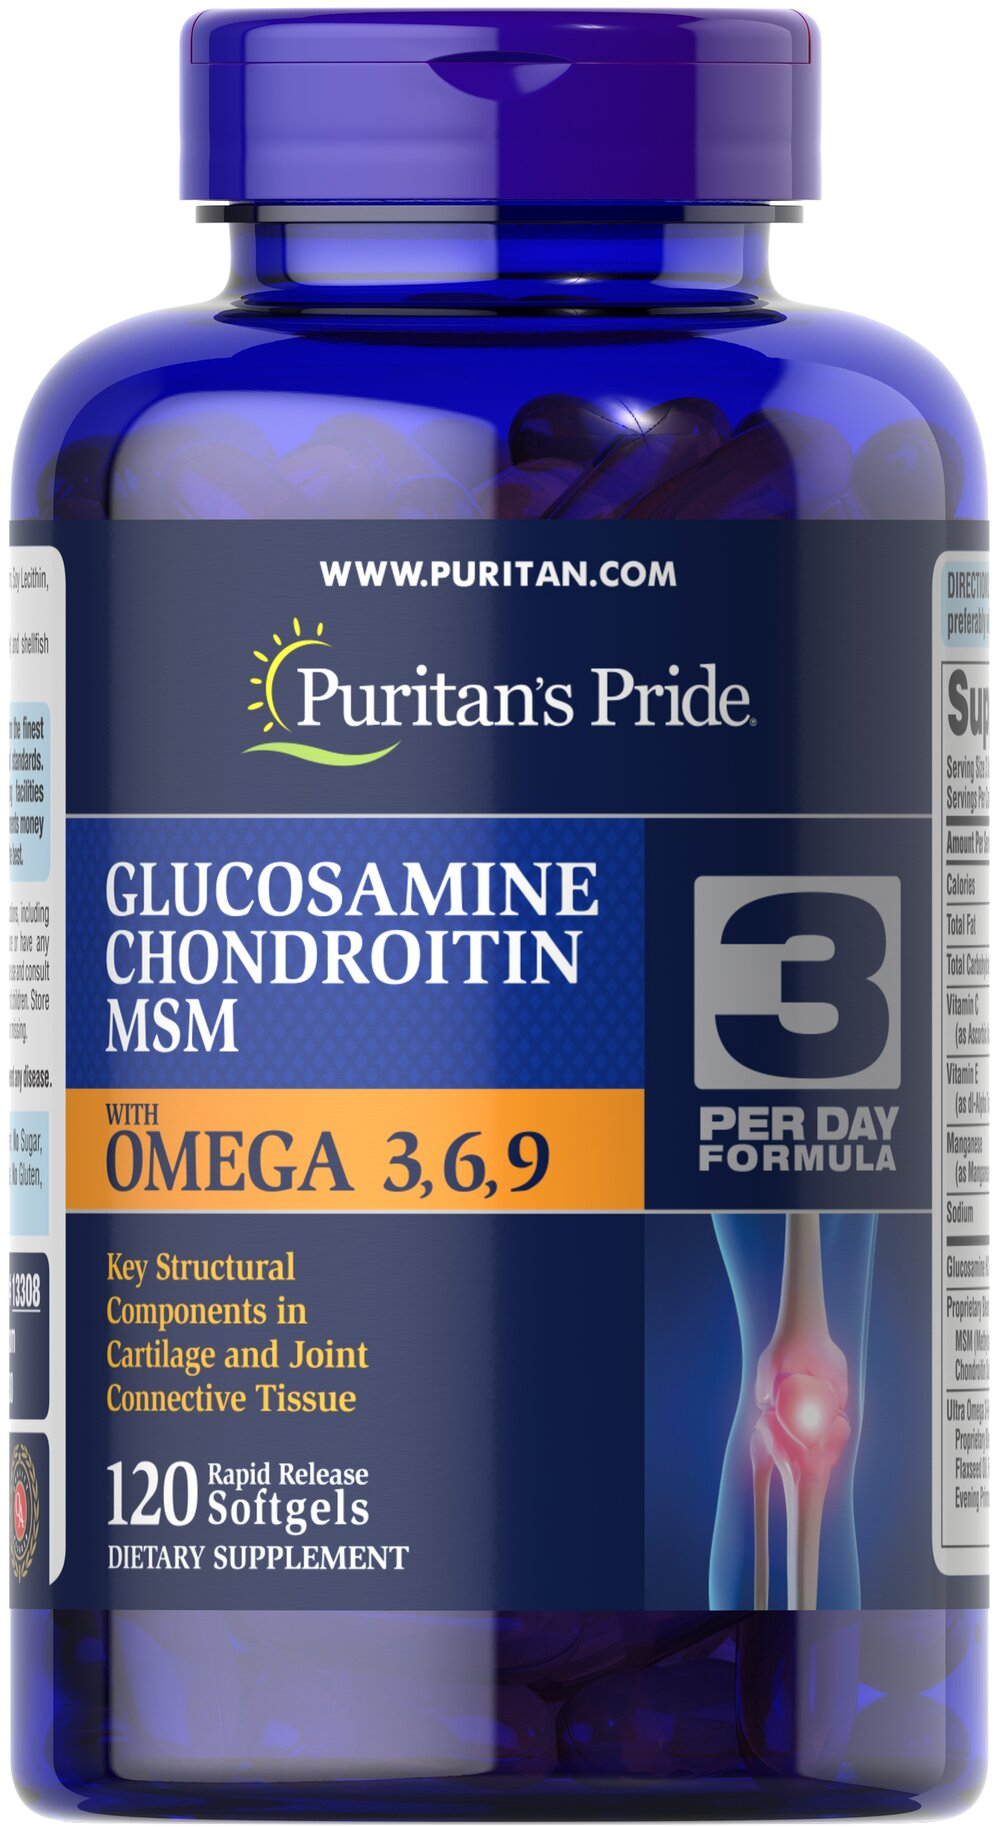 Glucosamine, Chondroitin & MSM with Omega 3, 6, 9 <p>The active ingredients in Joint Soother® are popular for their joint supporting abilities.** This formulation also includes <strong>Omega-3, -6, and -9 fatty acids</strong> from Primrose, Flax and Fish body oils. Support your mobility and flexibility with this formula.</p> 120 Softgels  $49.99